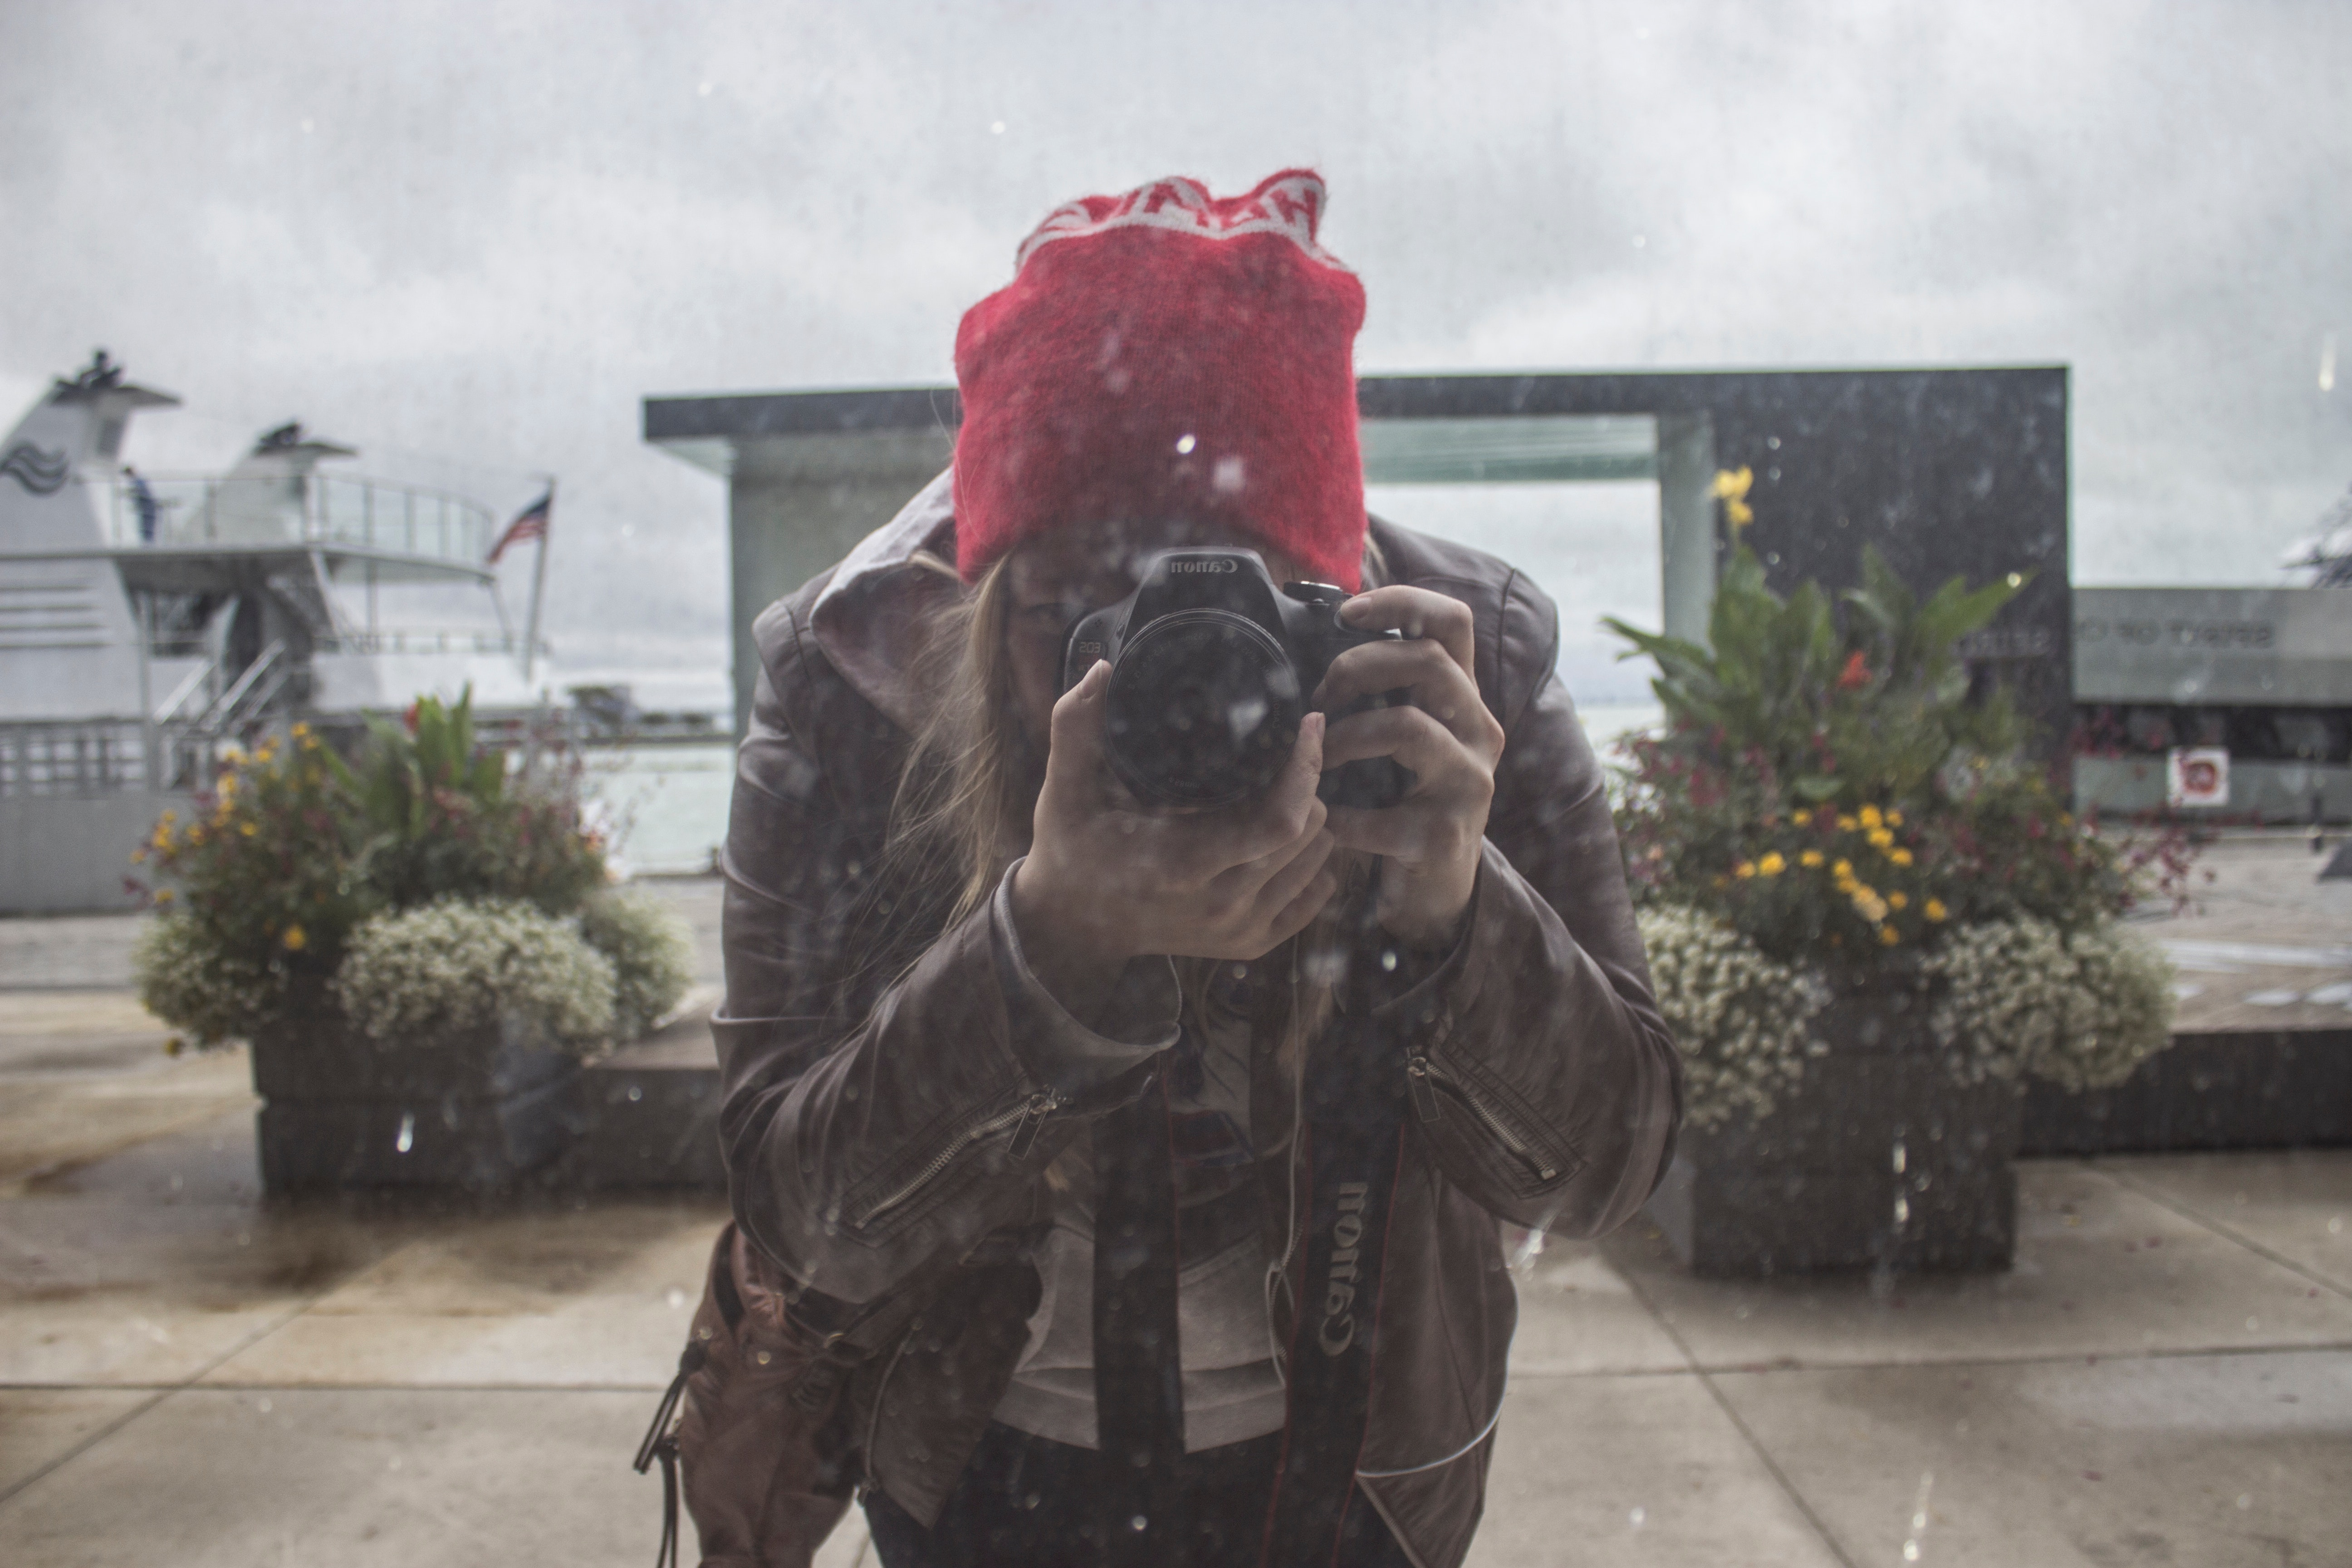 Woman in Brown Leather Jacket and Red Knit Cap Using Black Dslr Camera, Adult, Beanie, Blur, Camera, HQ Photo